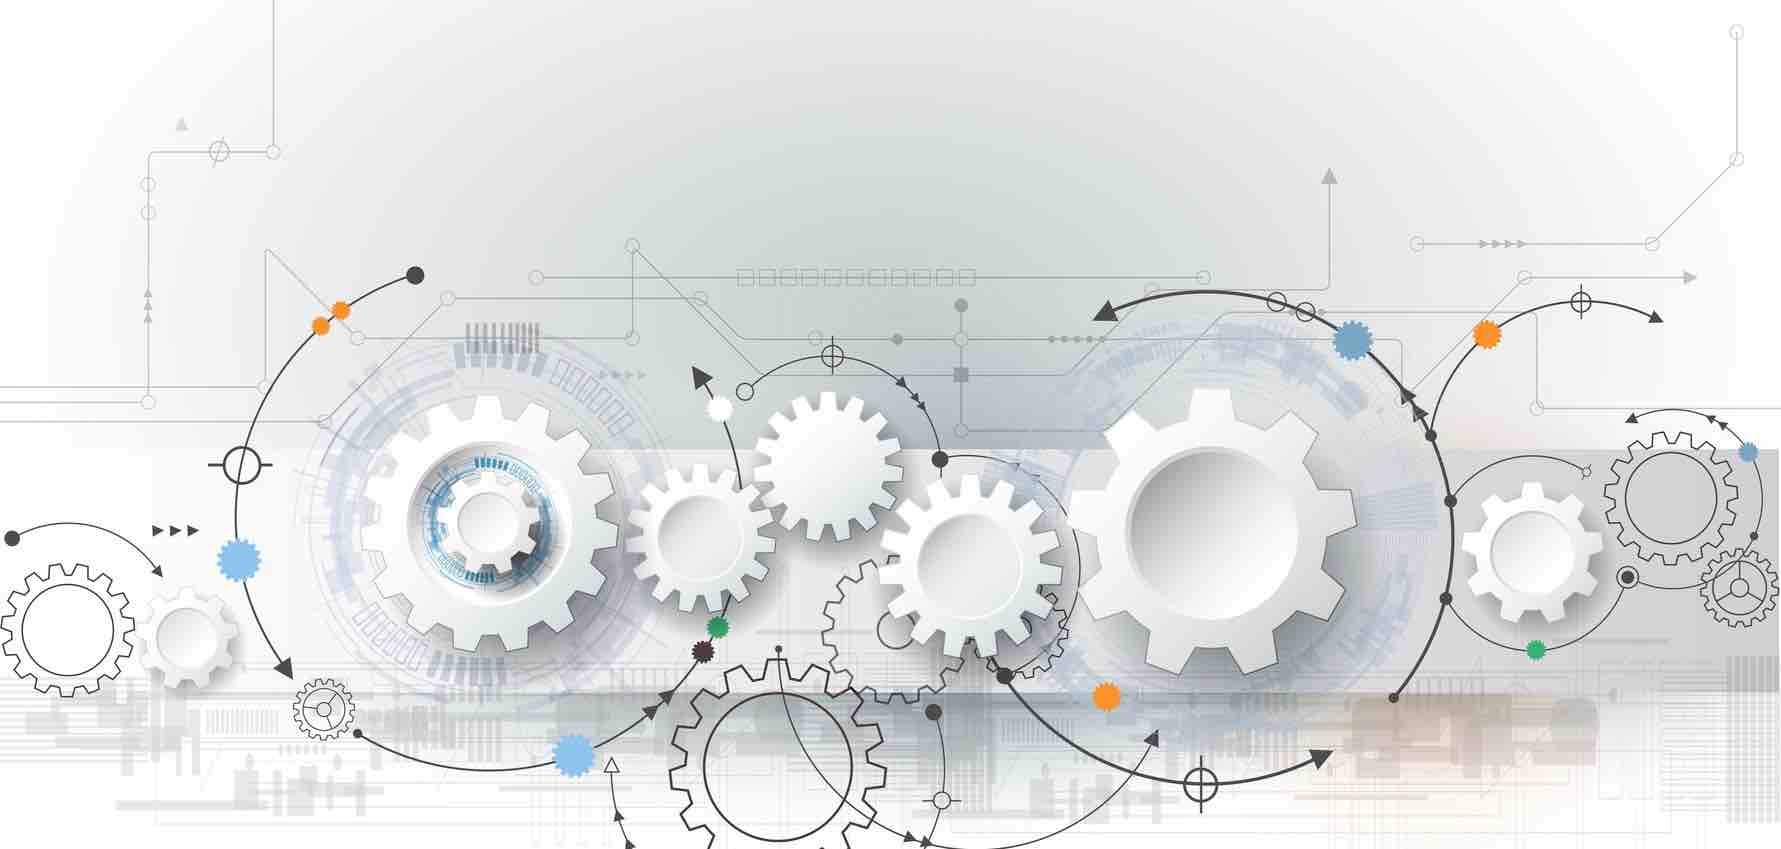 Tailoring Enterprise Architect with MDG Technologies